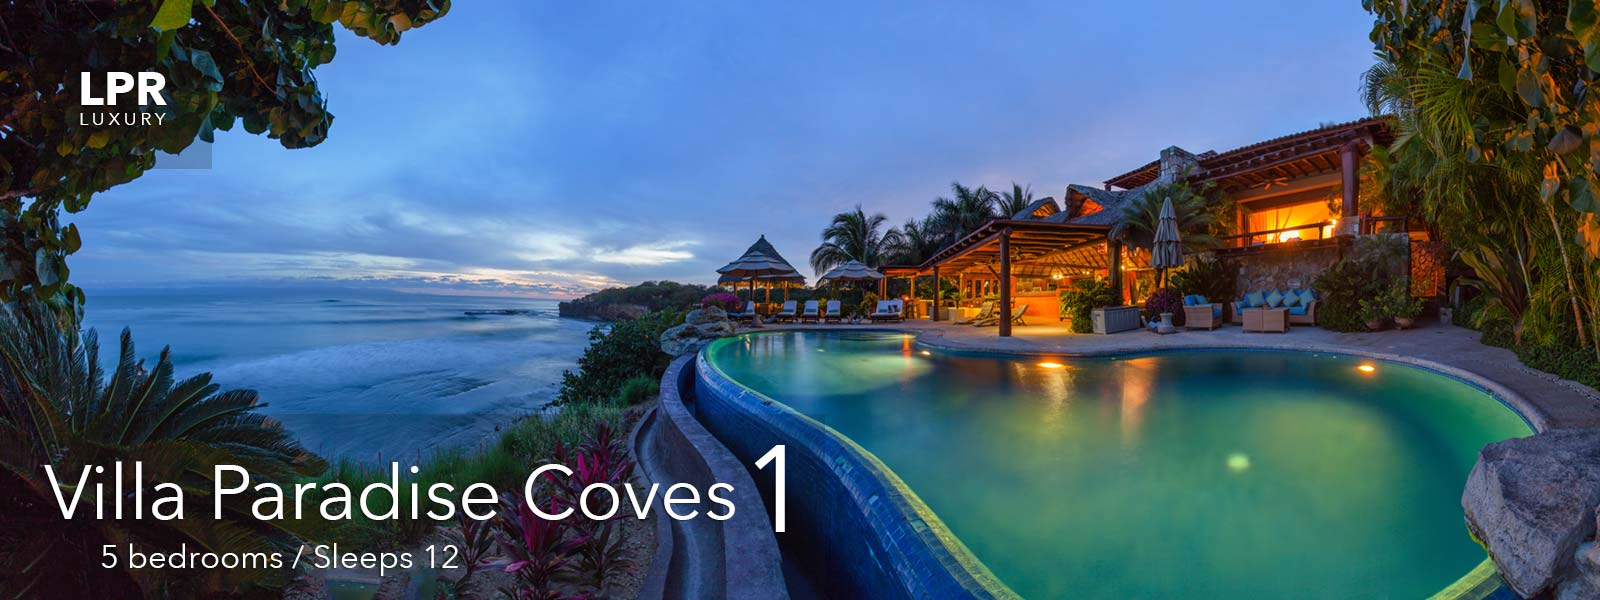 Villa Paradise Coves 1 - Luxury Punta de Mita Real Estate and Vacation Rentals